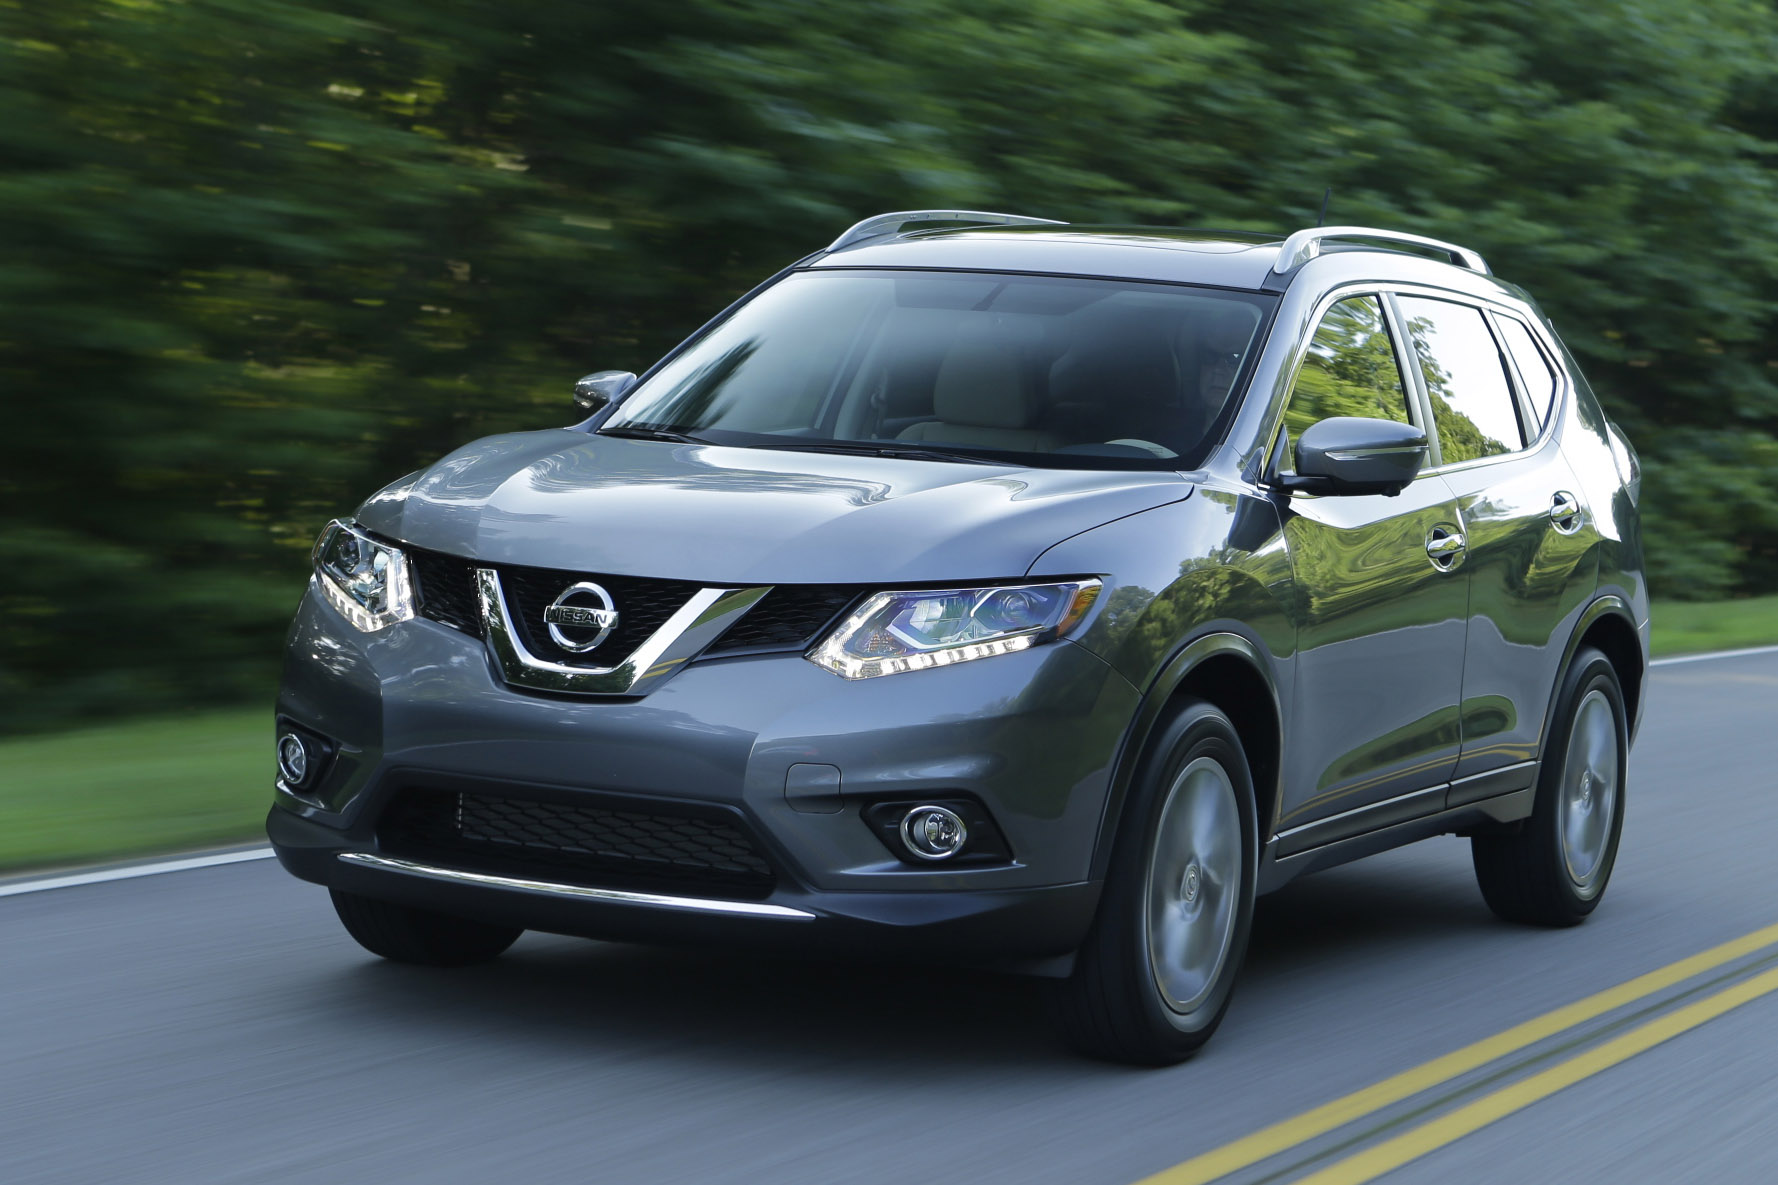 Nissan Rogue Interior >> 2014 Nissan Rogue Select Continues Brand's Lineup